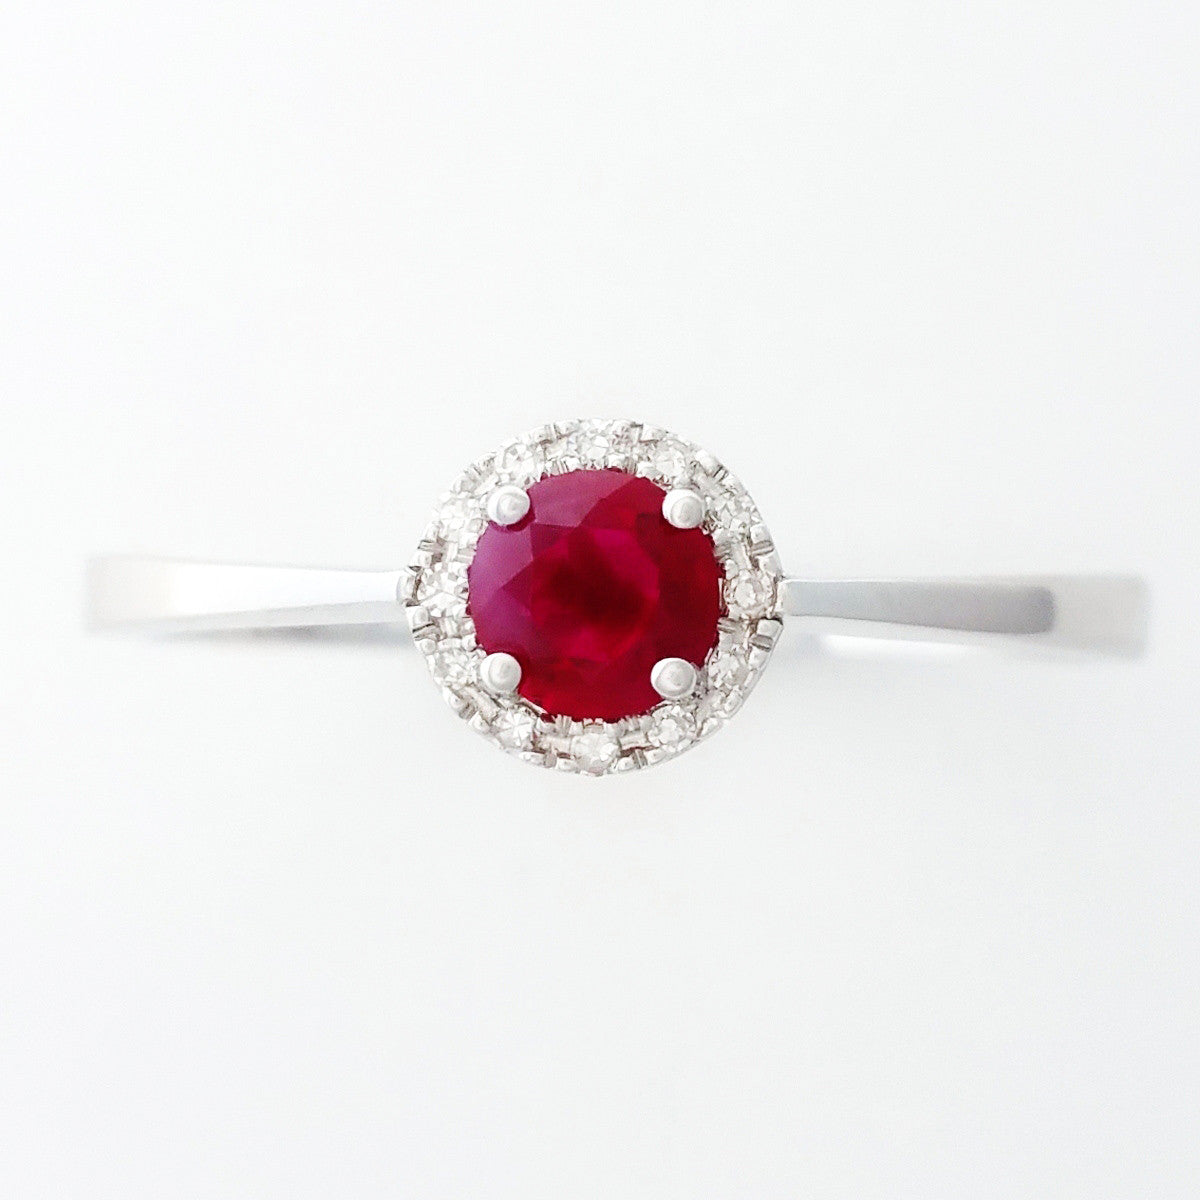 9K SOLID WHITE GOLD 0.30CT NATURAL RUBY HALO RING WITH 12 DIAMONDS.